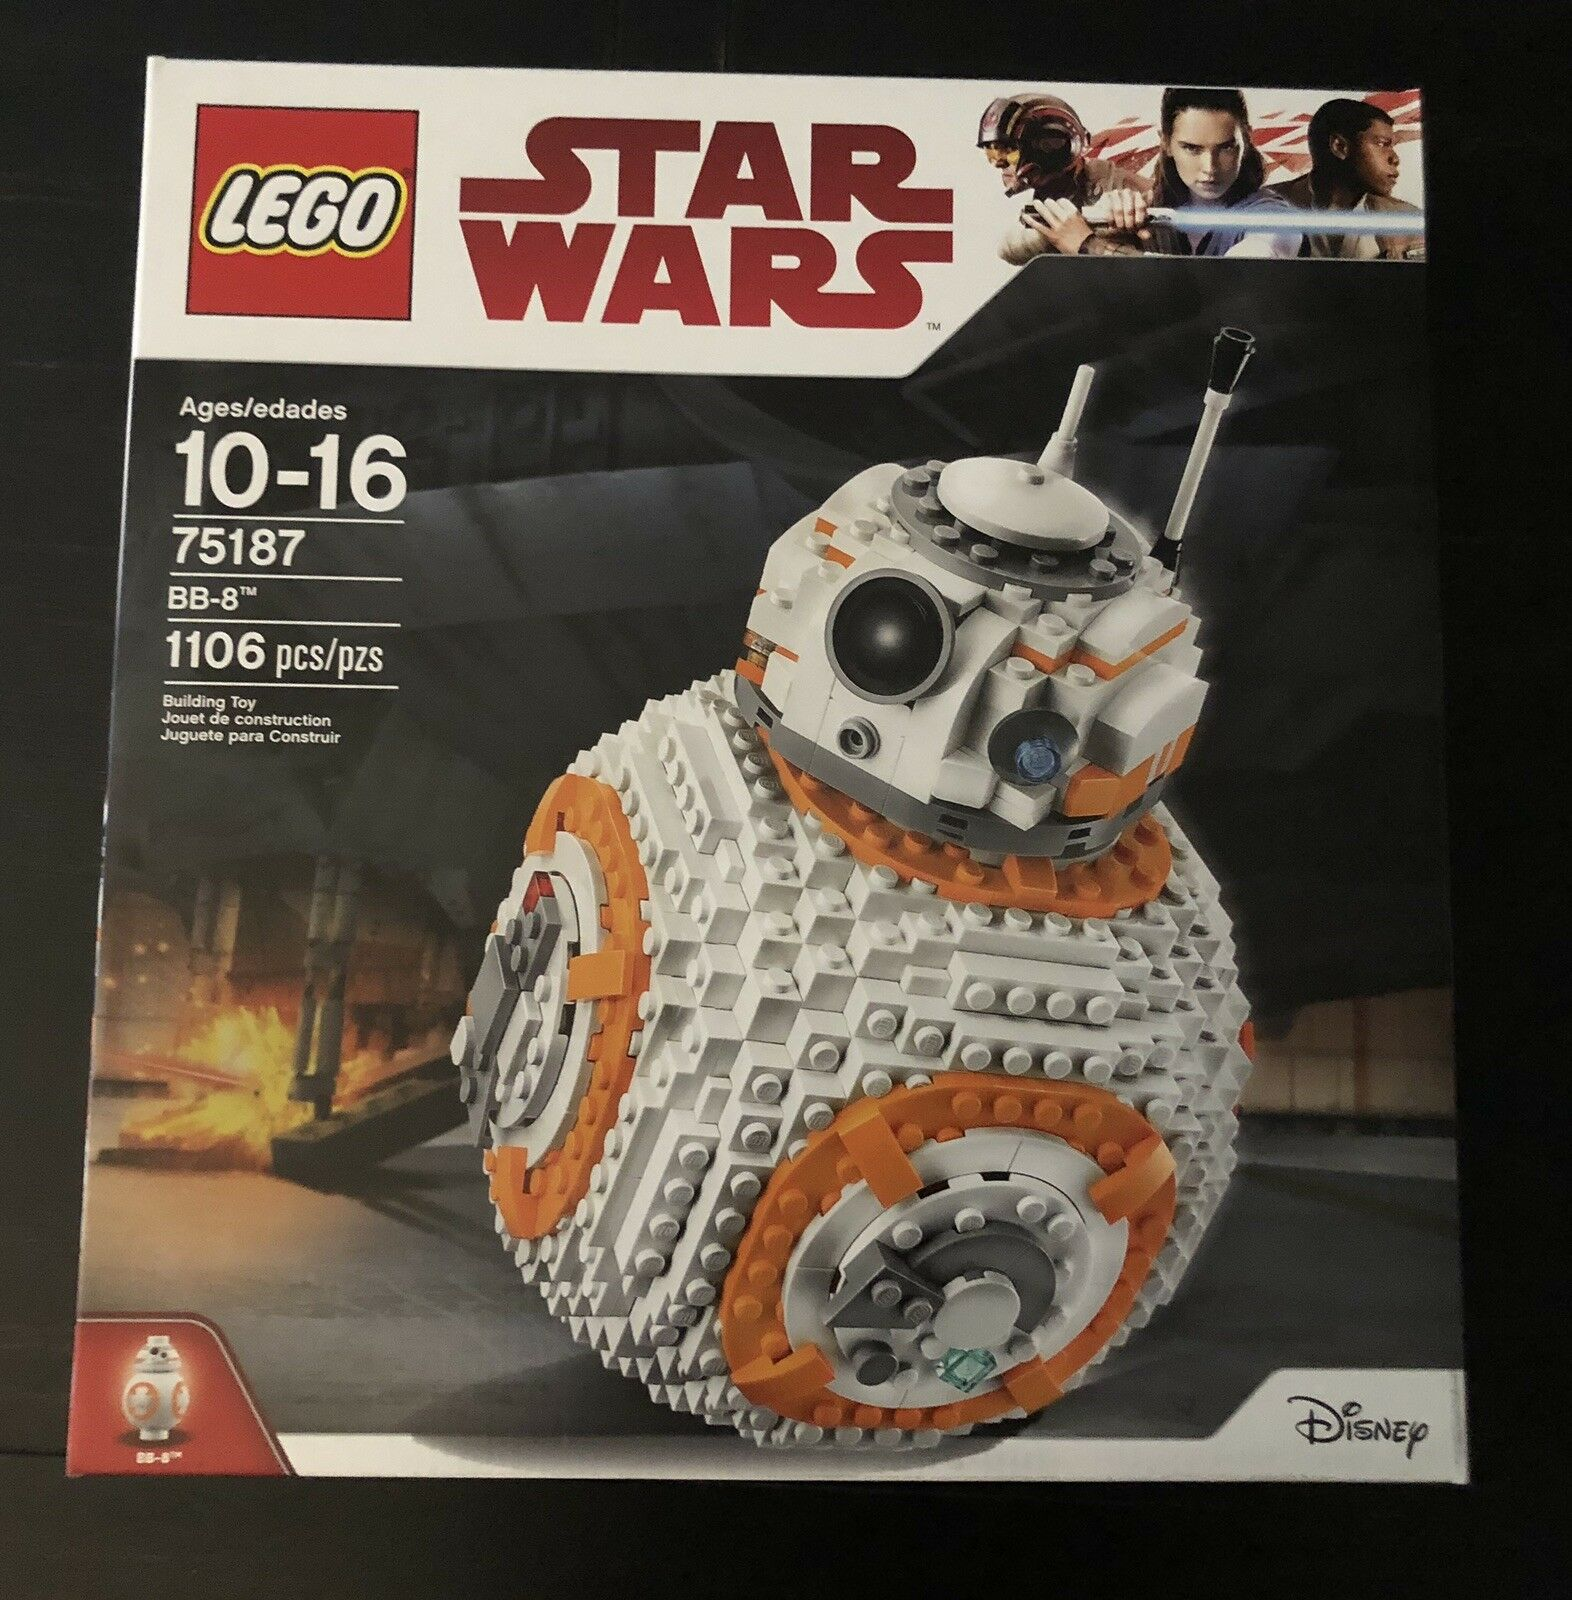 LEGO Star Wars BB-8 1106 Pieces Building Toy 75187  2017 NEW in Box